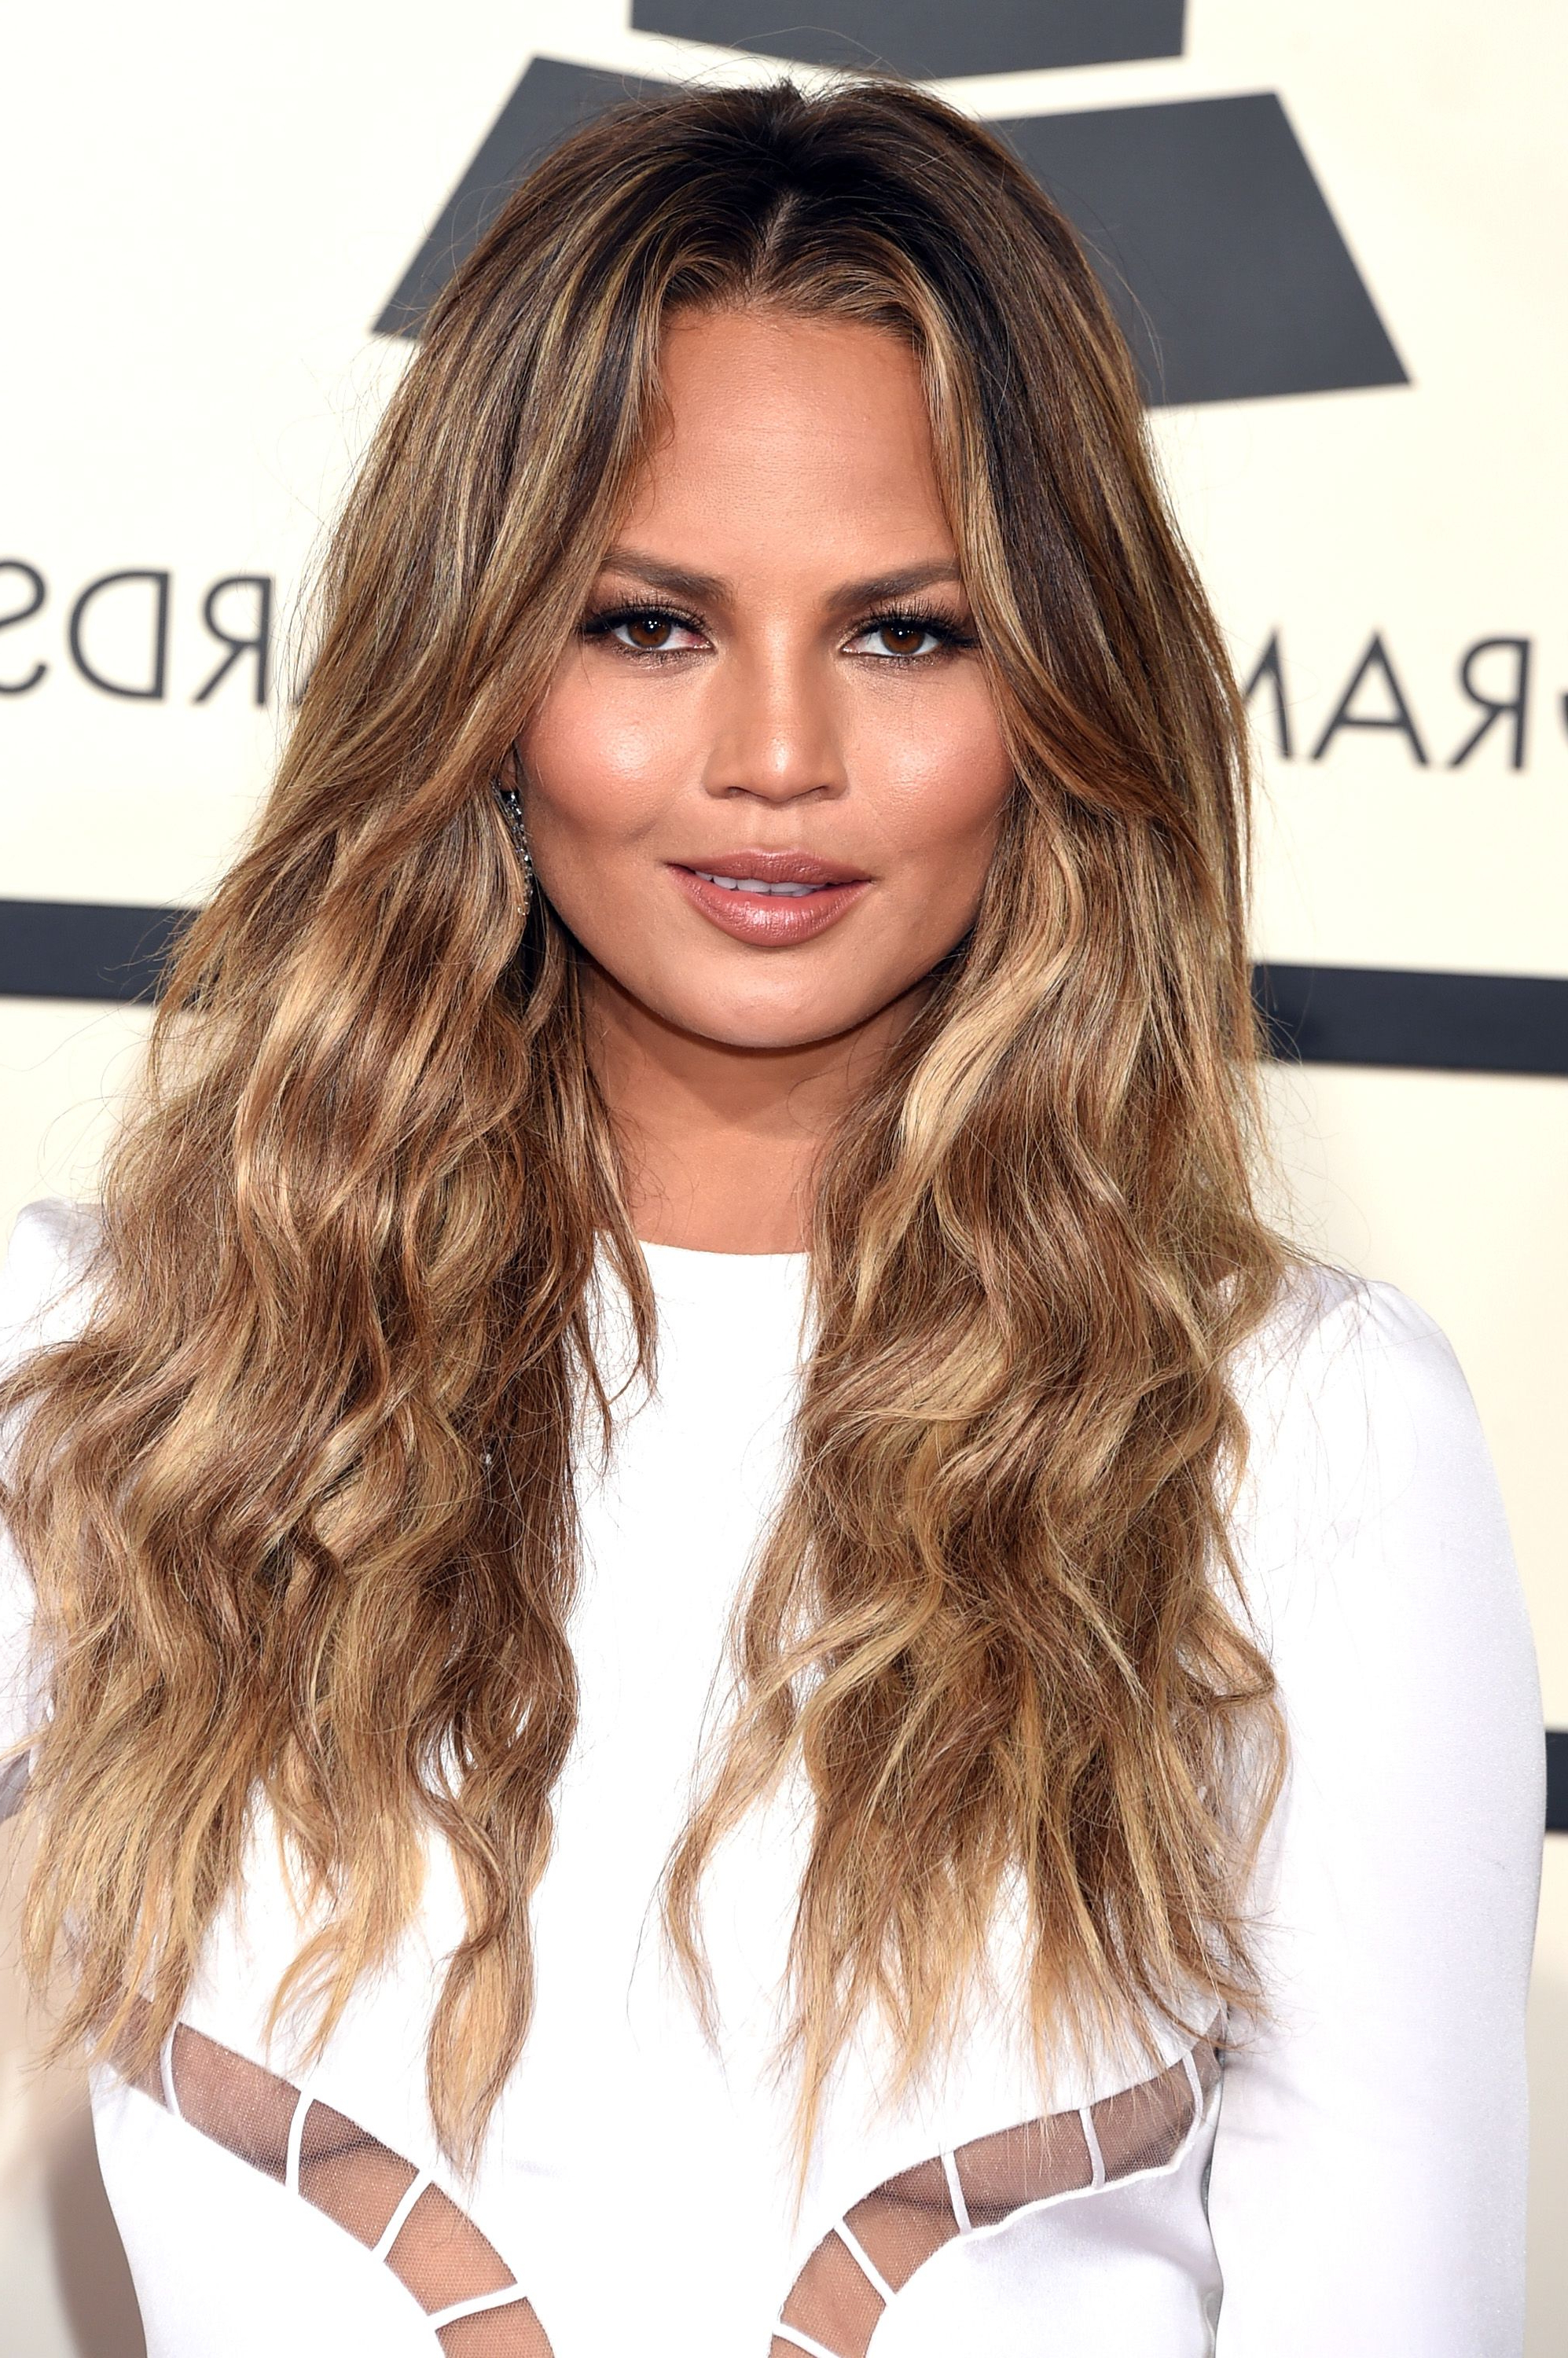 40 Best Layered Haircuts, Hairstyles & Trends For 2018 Regarding Best And Newest Long Voluminous Ombre Hairstyles With Layers (Gallery 19 of 20)